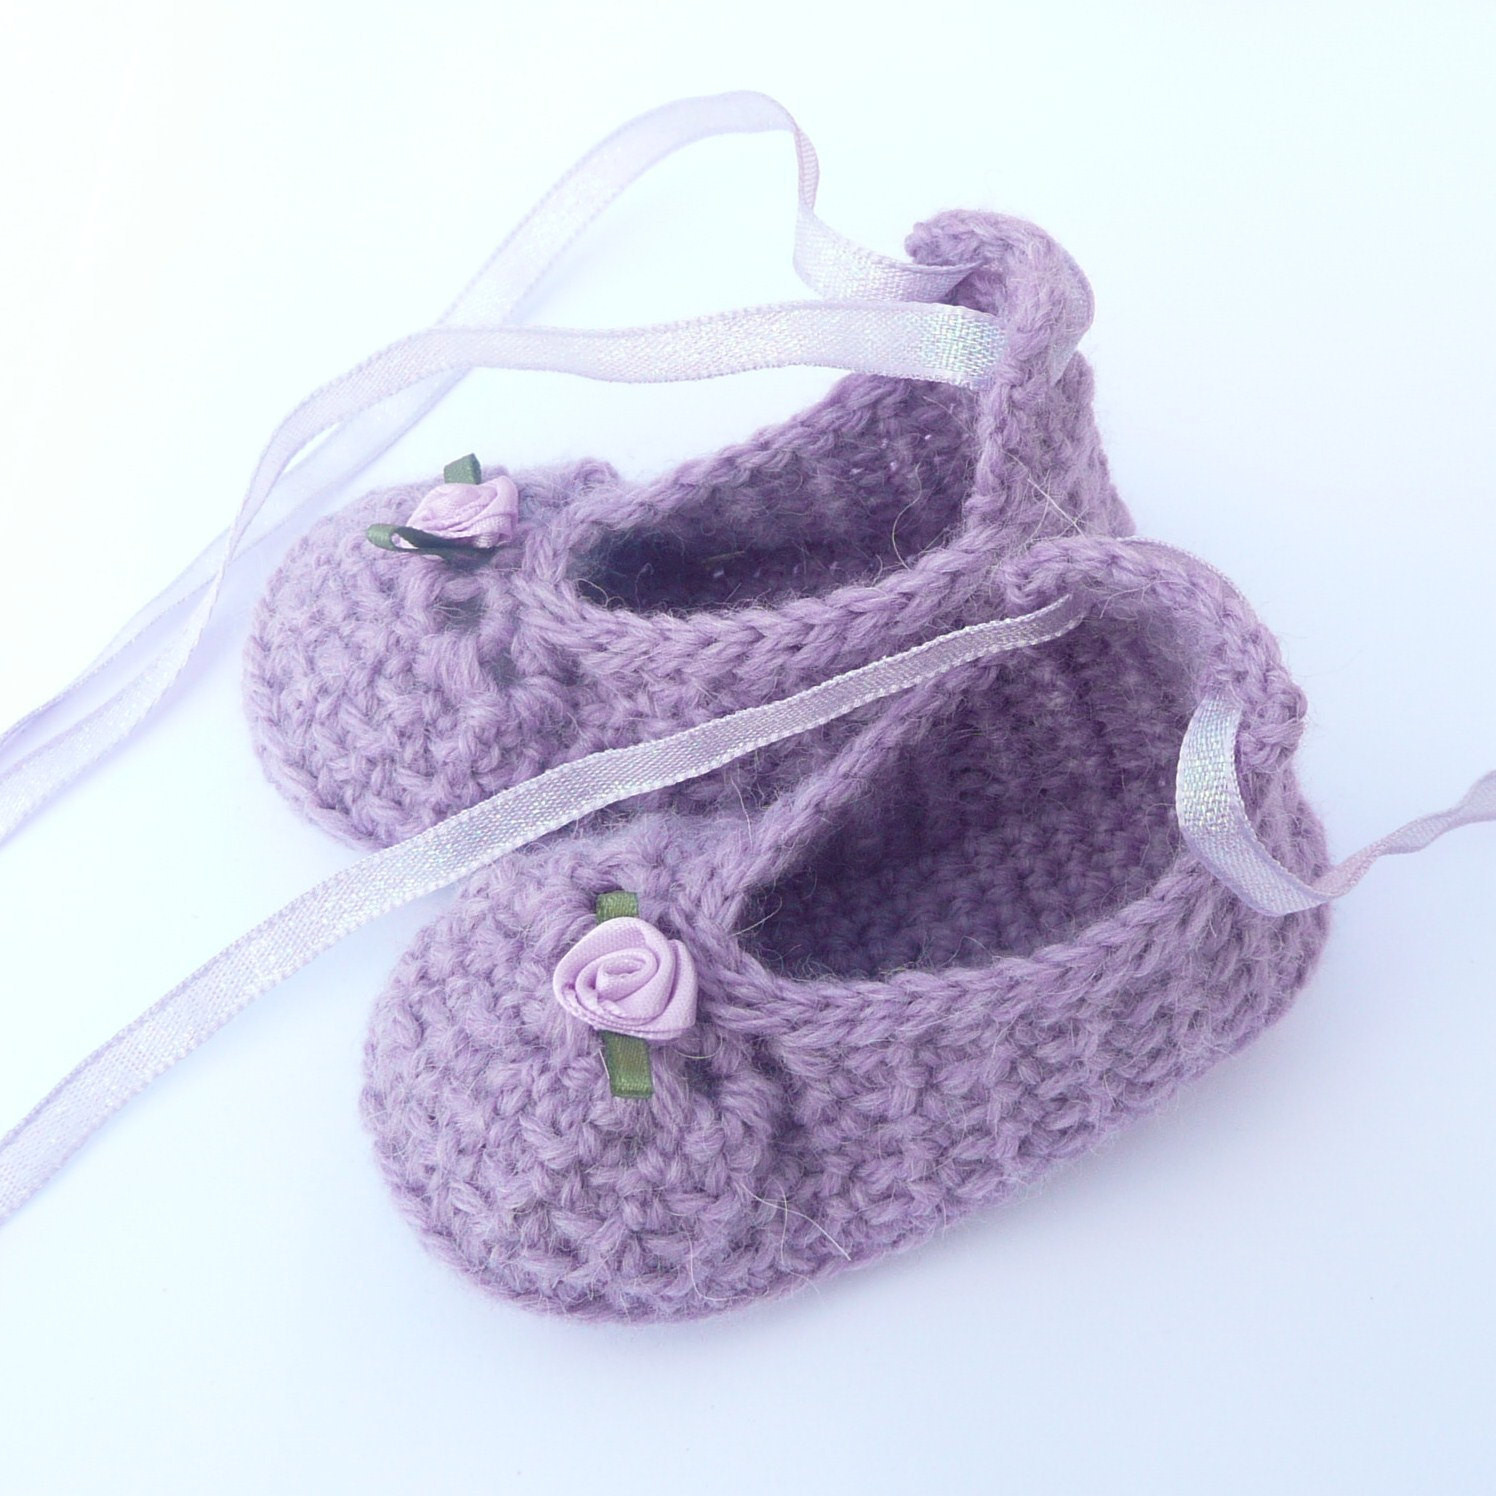 Crochet Baby Booties Awesome Baby Booties Crochet Pattern Posh Purple Party Baby Shoes Of Crochet Baby Booties Fresh Crochet Baby Mary Jane Booties Free Patterns